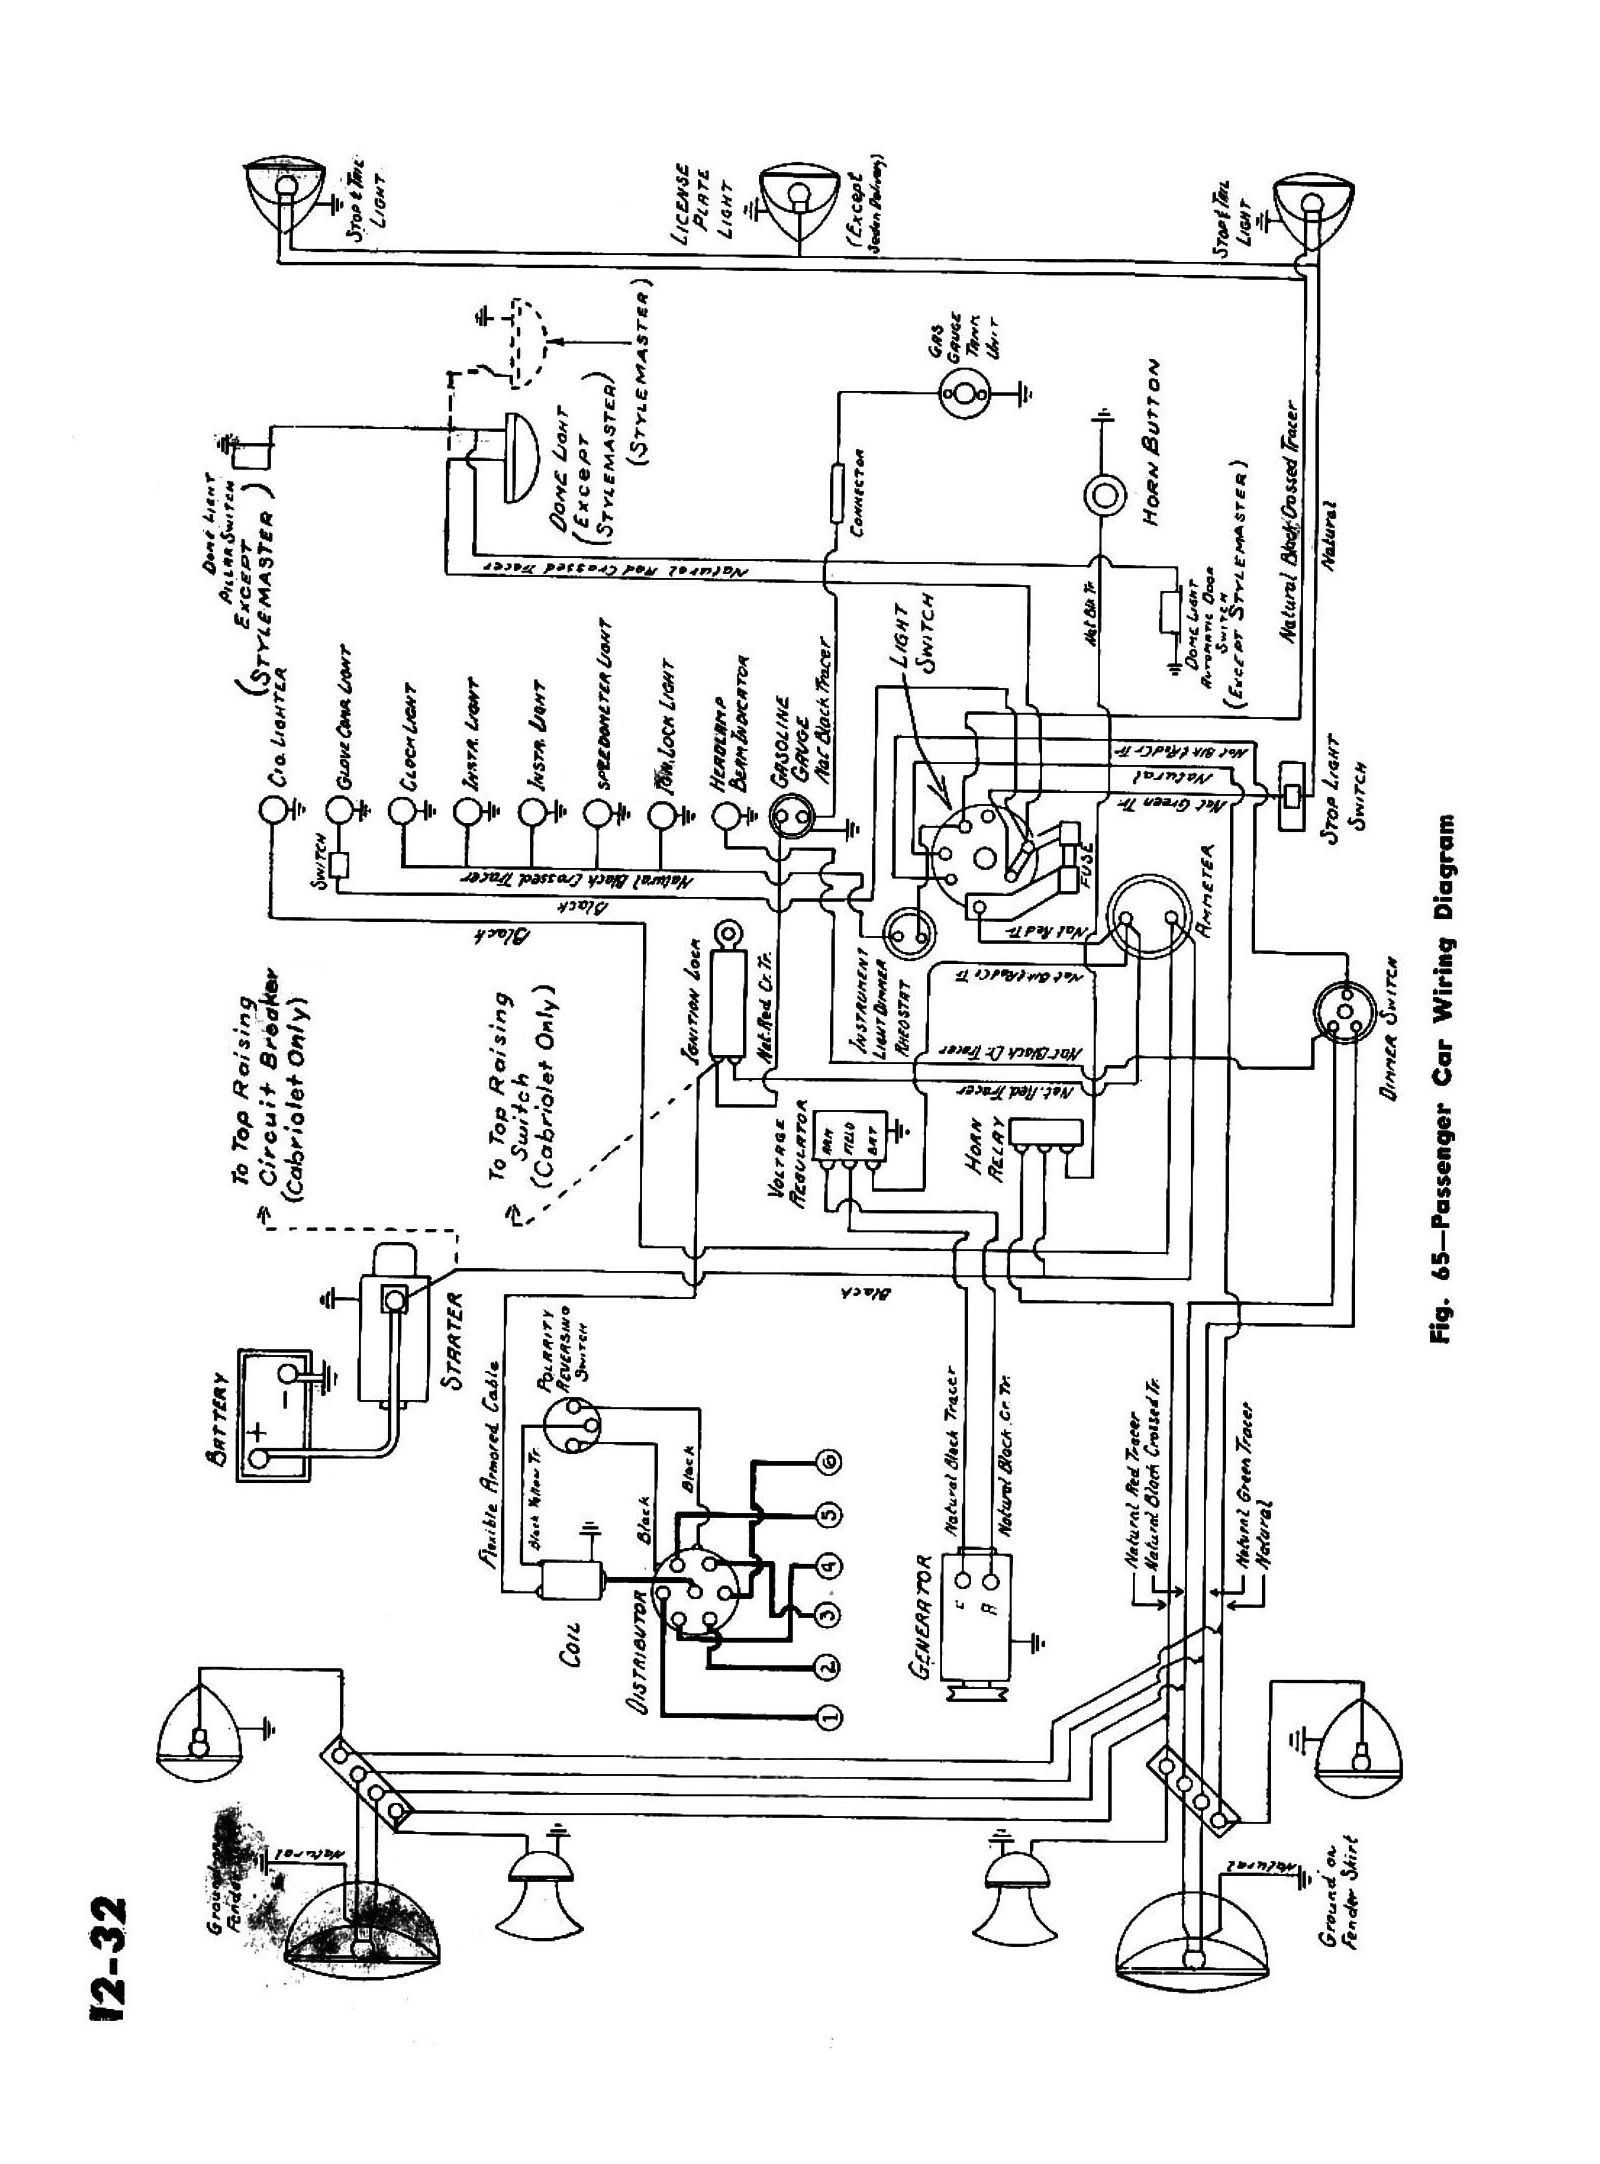 Unique Auto Wiring Repair Diagram Wiringdiagram